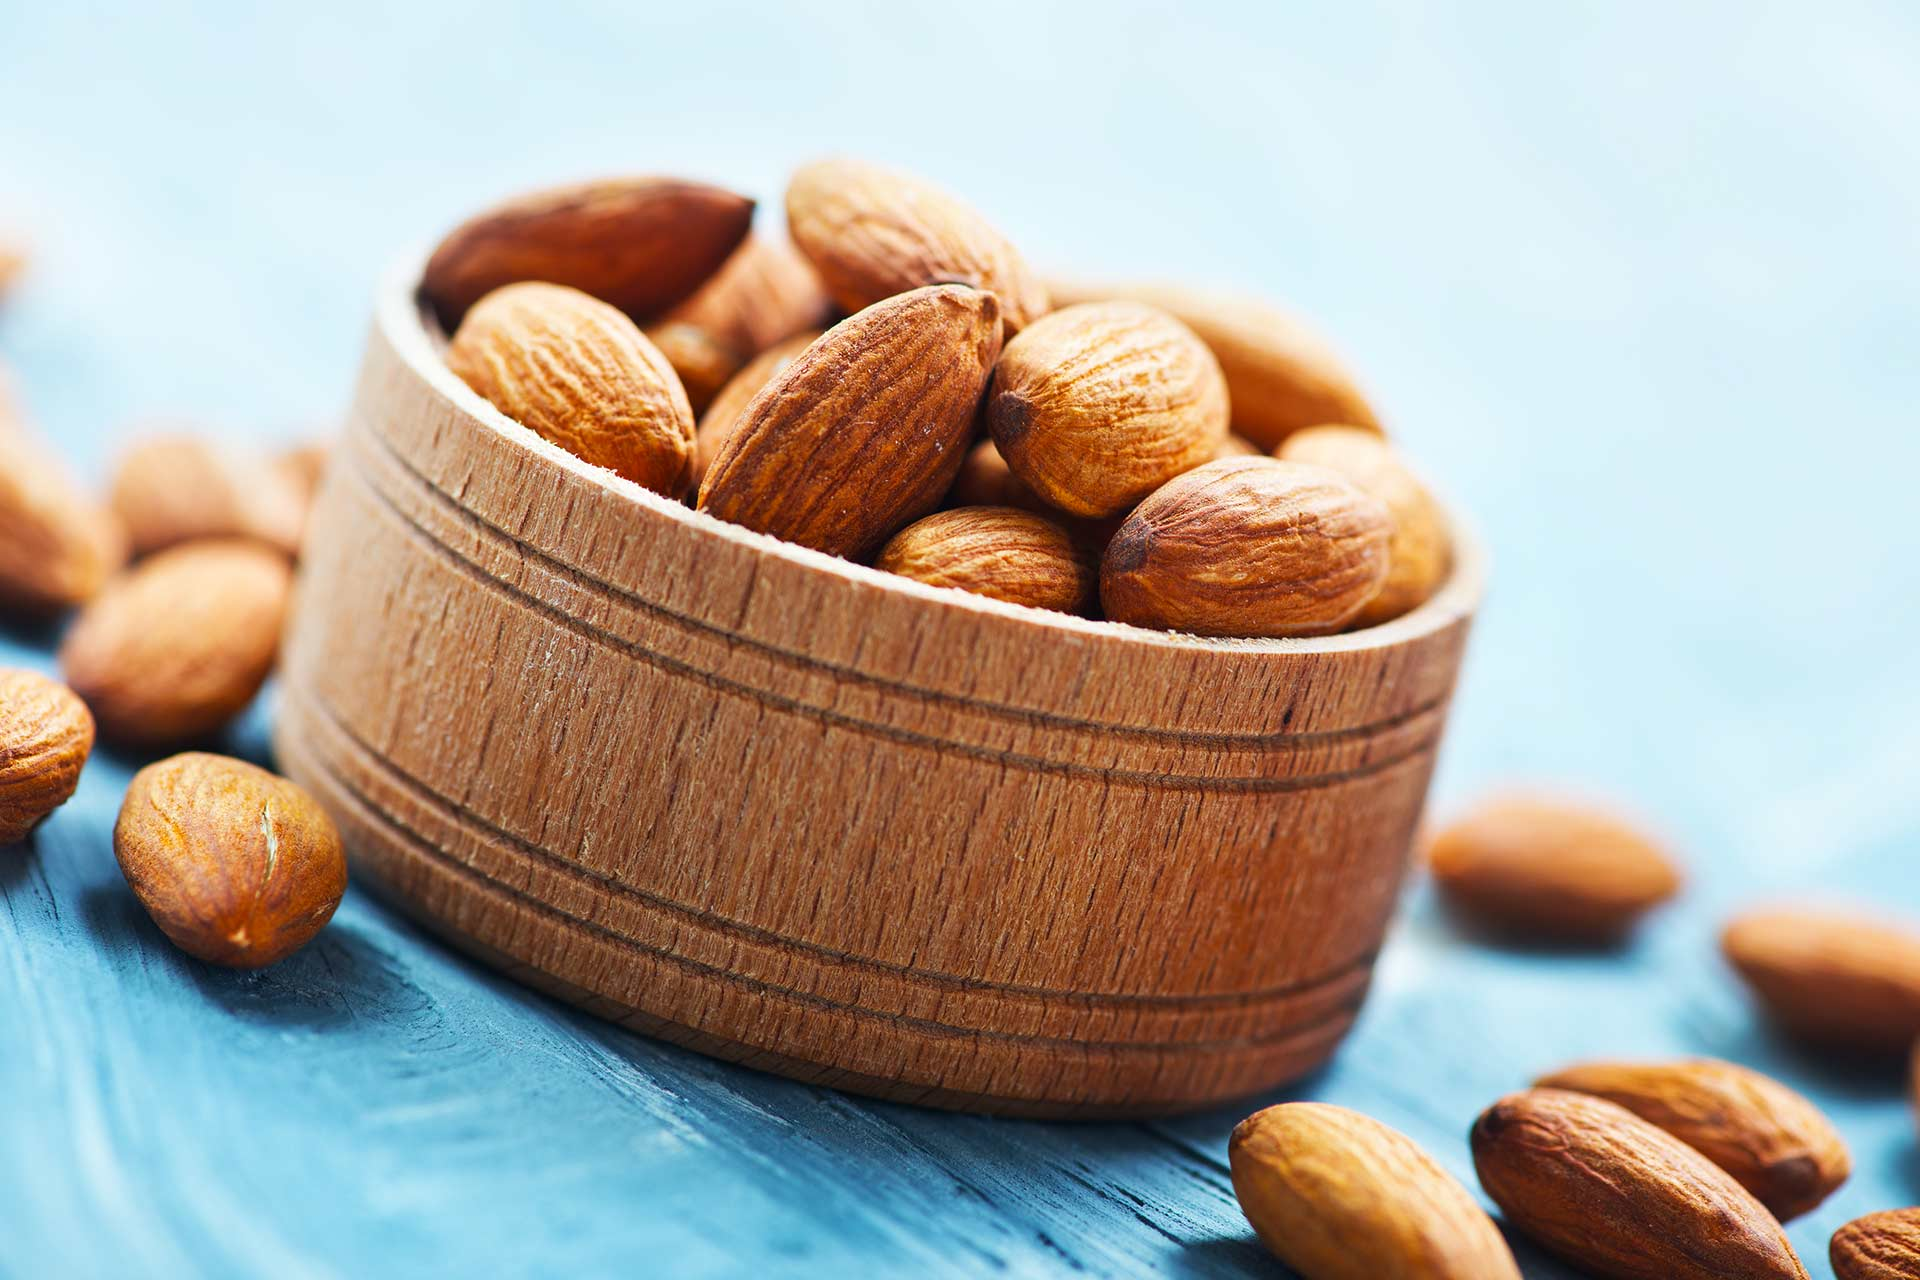 Almonds is essentially an edible seed from the Prunus Dulcis, known as the almond tree. They are native to the middle east but in recent years the US has become the world's largest producer. Almonds are tasty and can be found in almost every grocery store. 1. Almonds are packed with nutrients. A 28g (1oz) serving of almonds carries: - 3.5g of Fibre - 6g of protein - 14g of Fat (good fat that is) - Vitamin E- 37% of recommended daily dose - Manganese - 32% of Recommended daily dose - Magnesium – 20% of recommended daily dose They also contain vitamin b2, coper and phosphorus. 2. Almonds can assist with blood sugar control Almonds are low in carbs and high in healthy fats, protein and fiber. This combination works very well for people with diabetes. They also have high levels of magnesium and magnesium is a mineral that help control blood sugar levels. 3. Almonds can lower cholesterol levels. High LDL also known as bad cholesterol poses risk for Heart disease and the healthy fats in almonds help reduce LDL levels. A recent study found that a diet where 20% of calories came from Almonds lowered LDL cholesterol levels by an average of 12.4mg/dL.